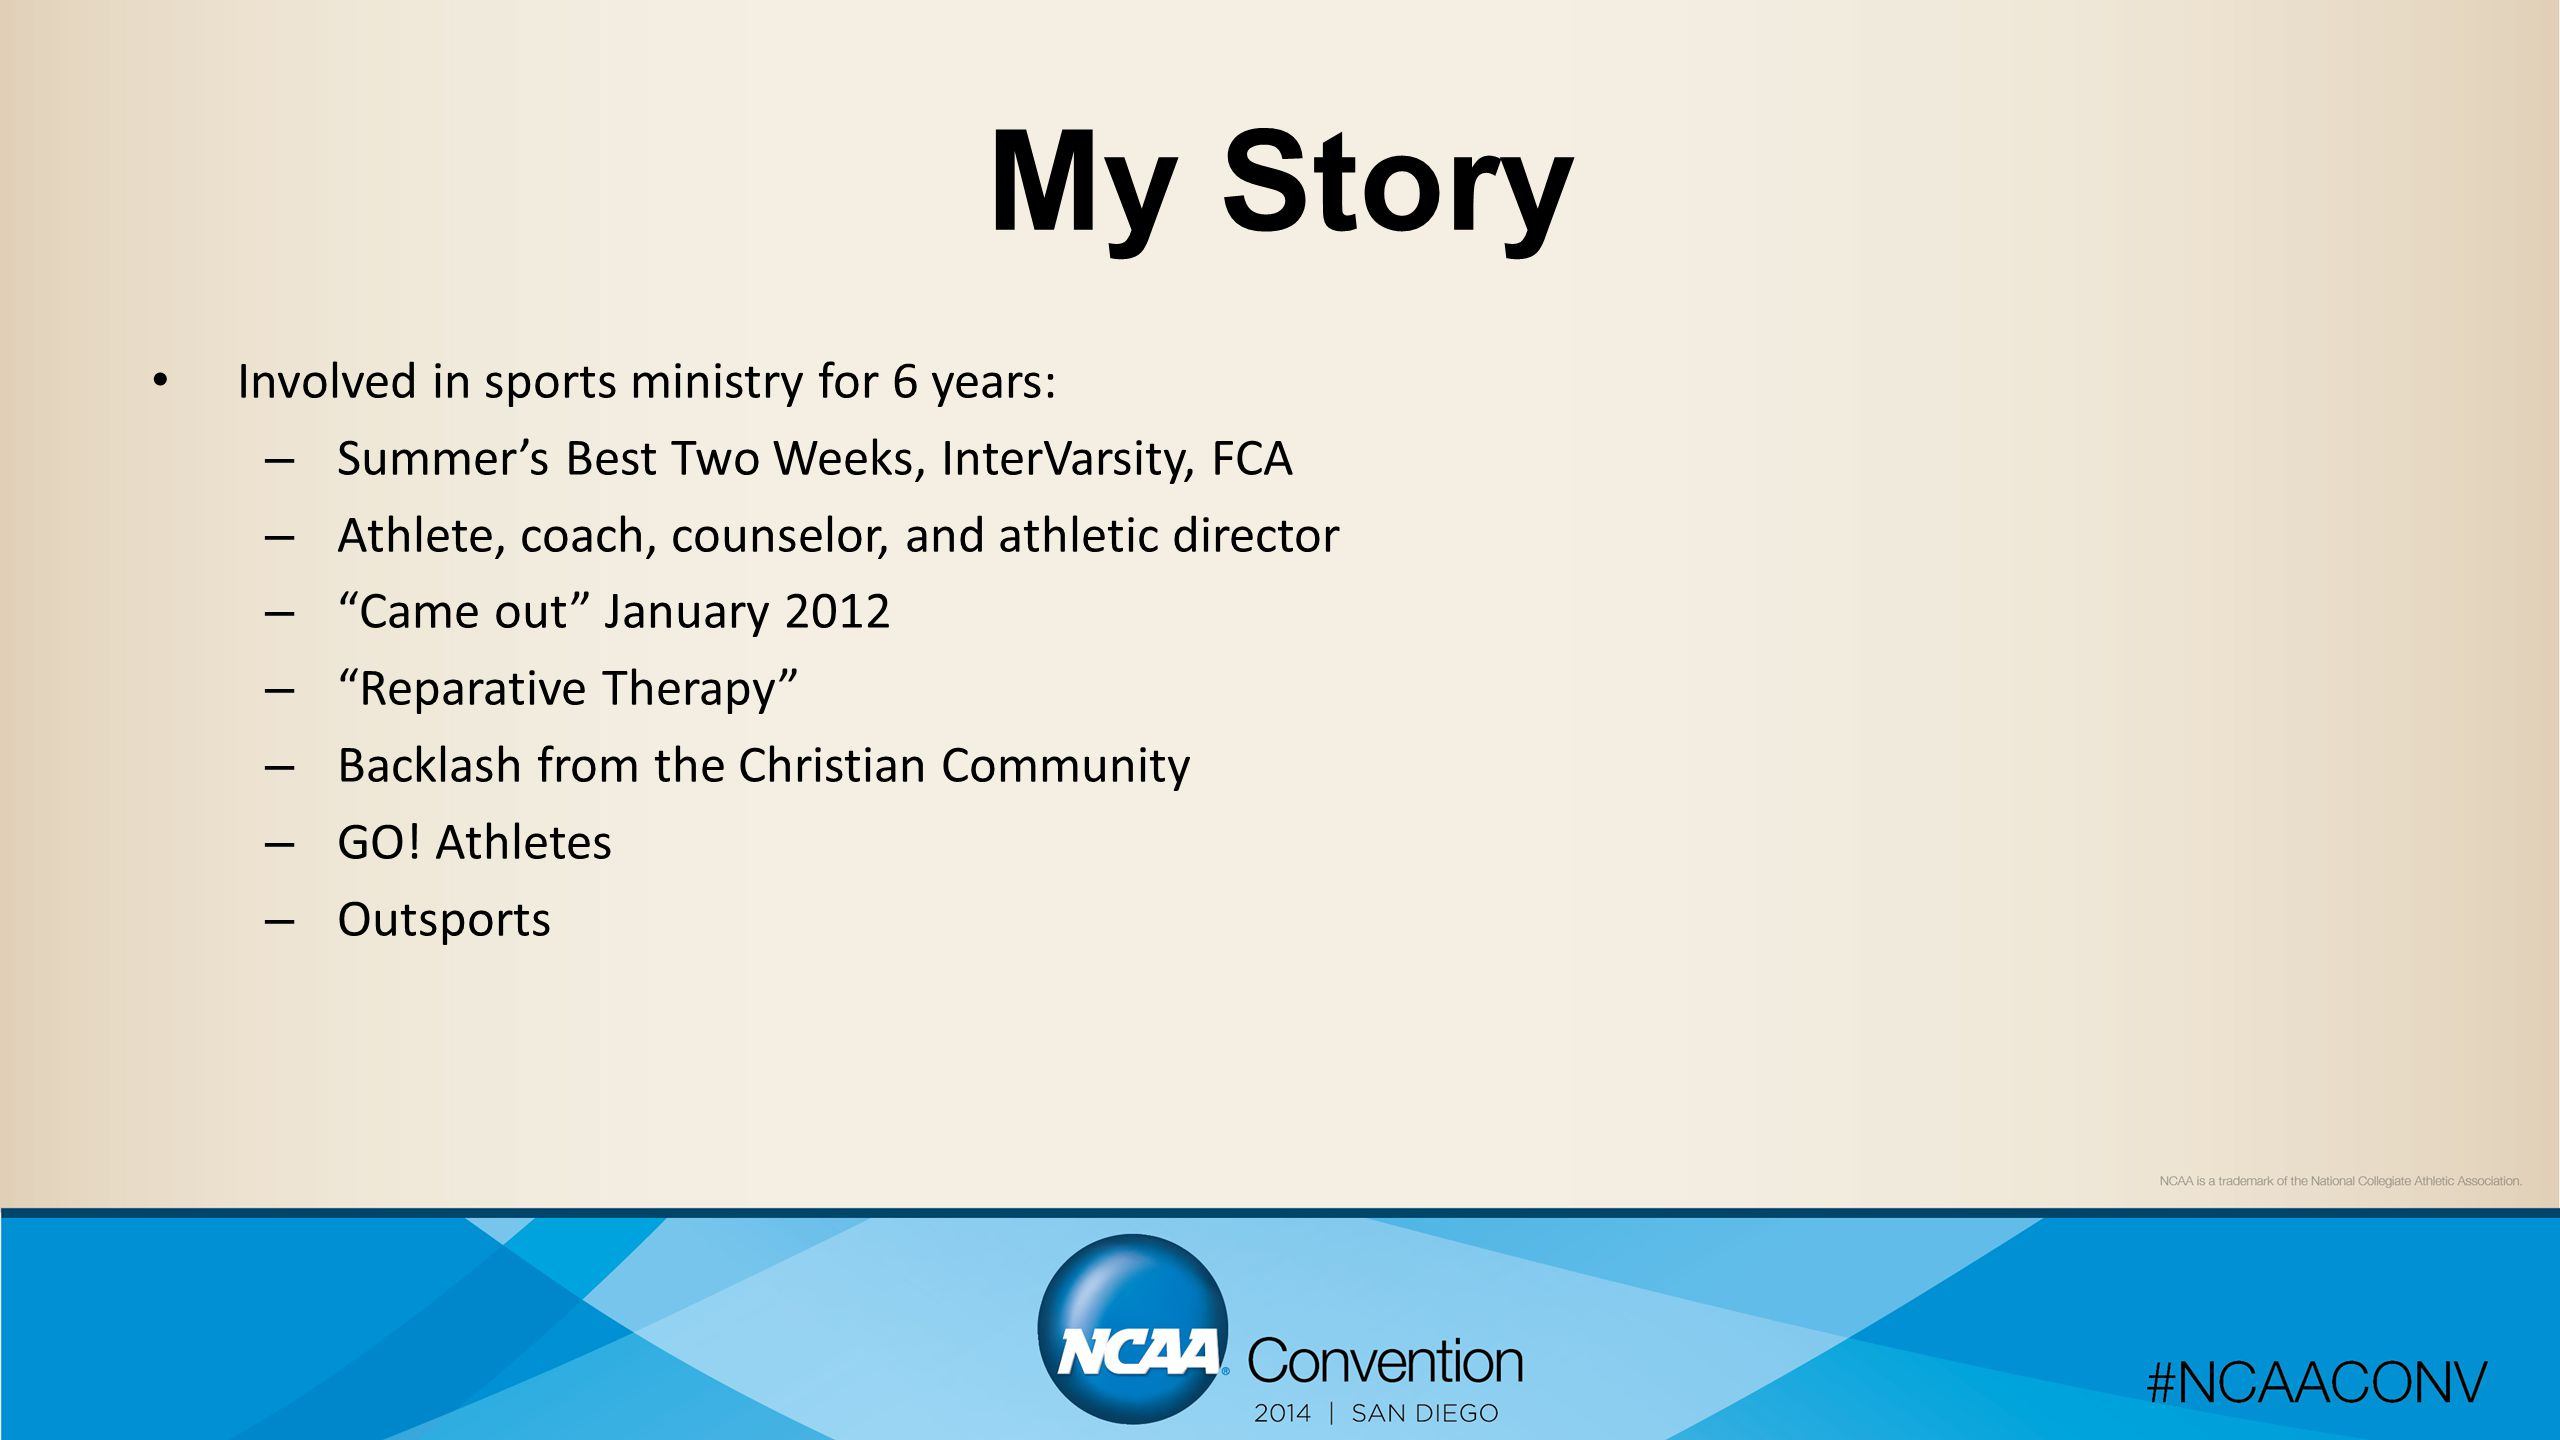 My Story Involved in sports ministry for 6 years: – Summer's Best Two Weeks, InterVarsity, FCA – Athlete, coach, counselor, and athletic director – Came out January 2012 – Reparative Therapy – Backlash from the Christian Community – GO.